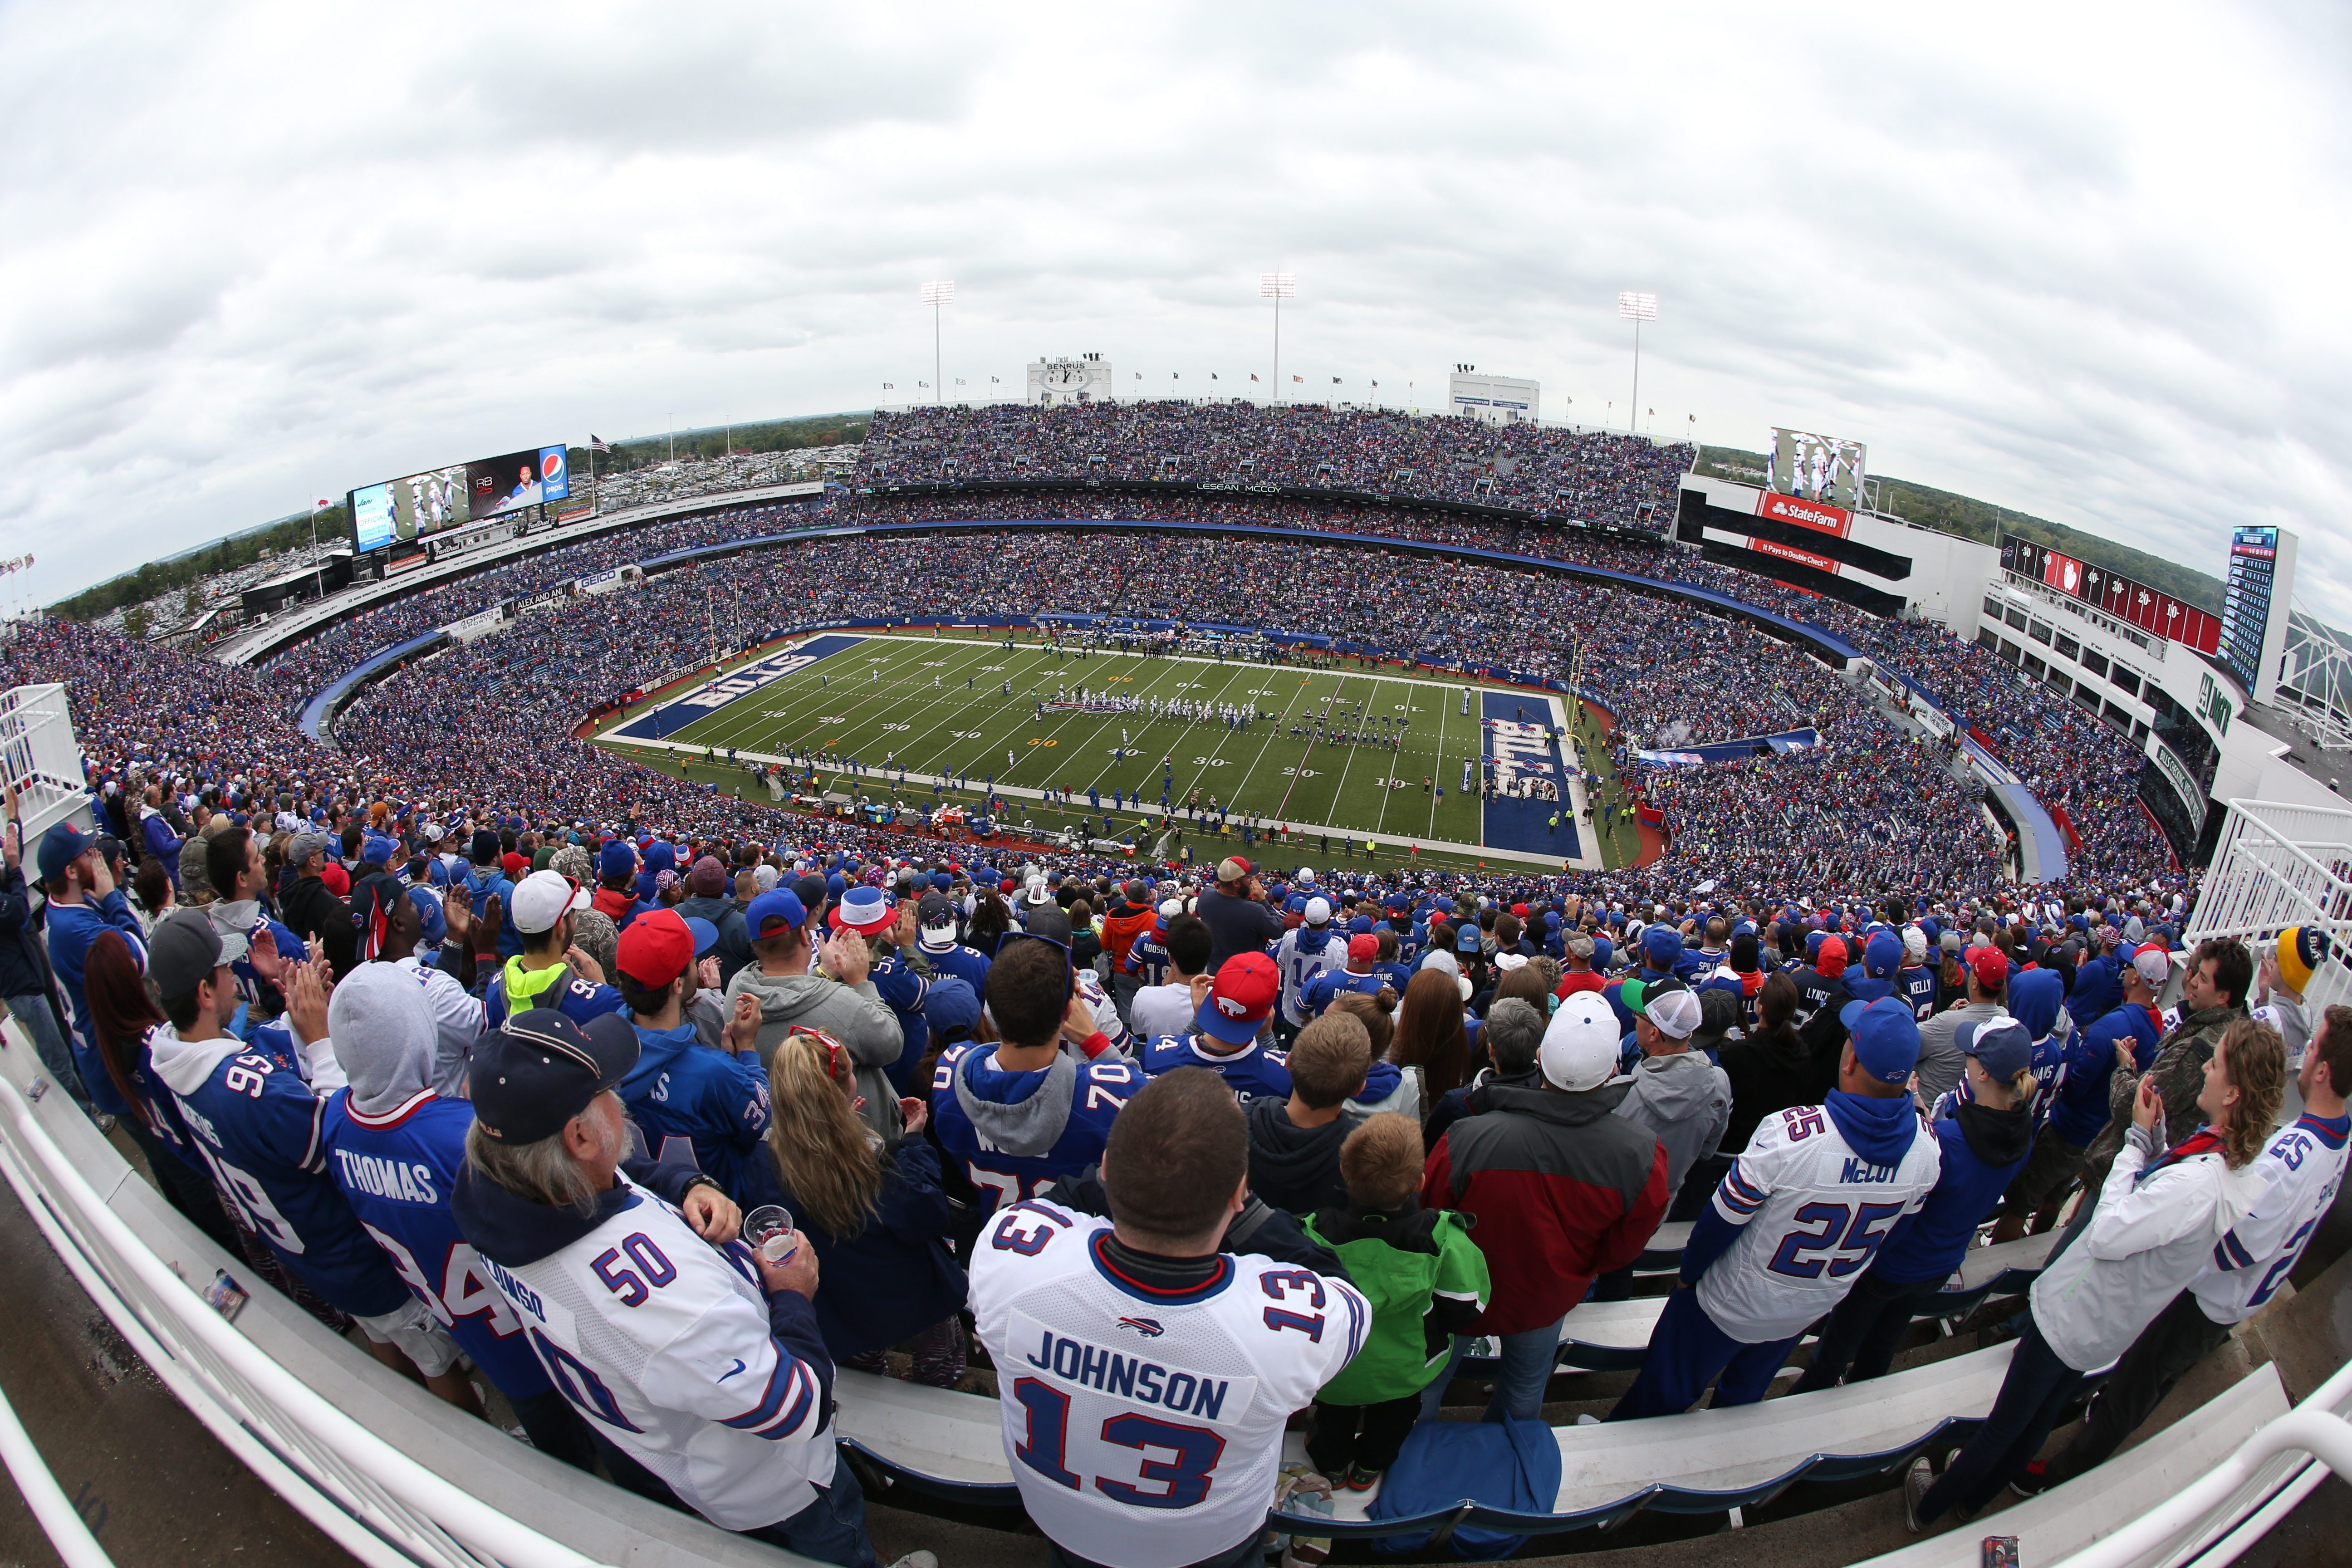 Buffalo Bills fans will get the chance to show how loud they can get in support of their team at Ralph Wilson Stadium in Orchard Park on Sunday.